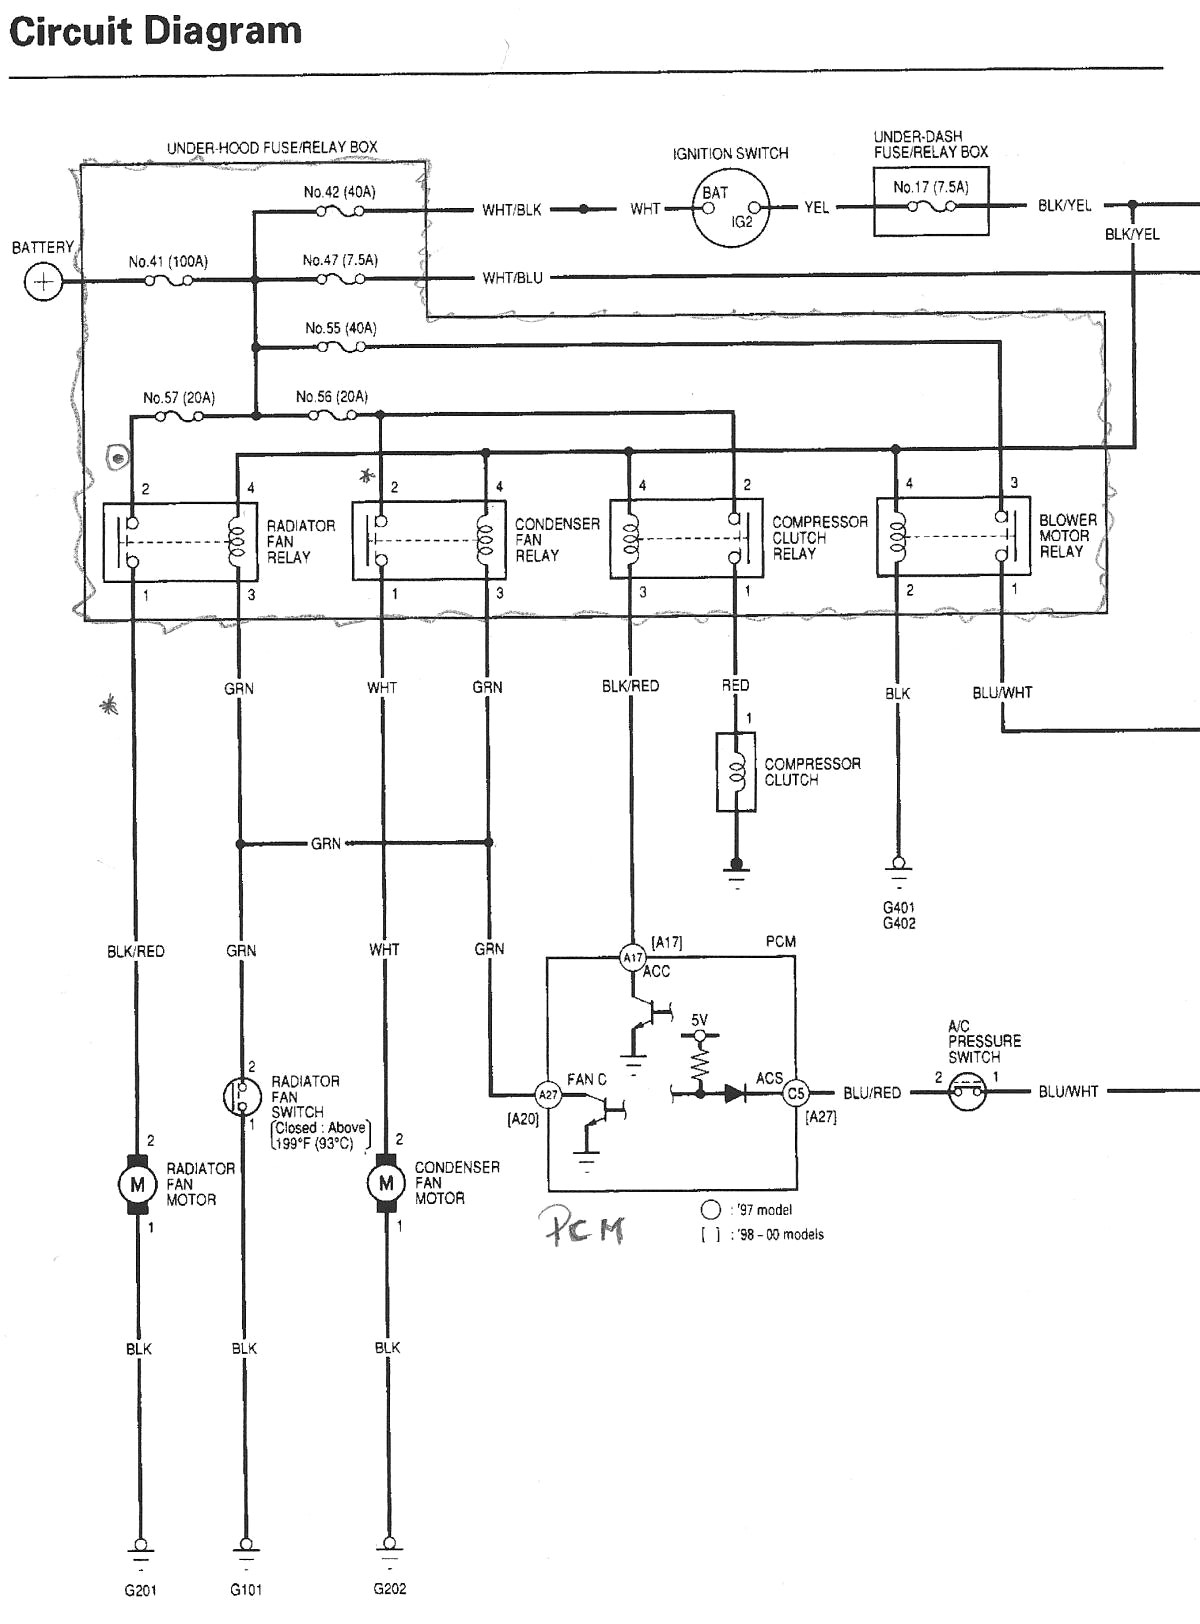 1990 Honda Accord Engine Diagram 2003 Honda Accord Stereo Wiring Diagram  and Adorable Blurts